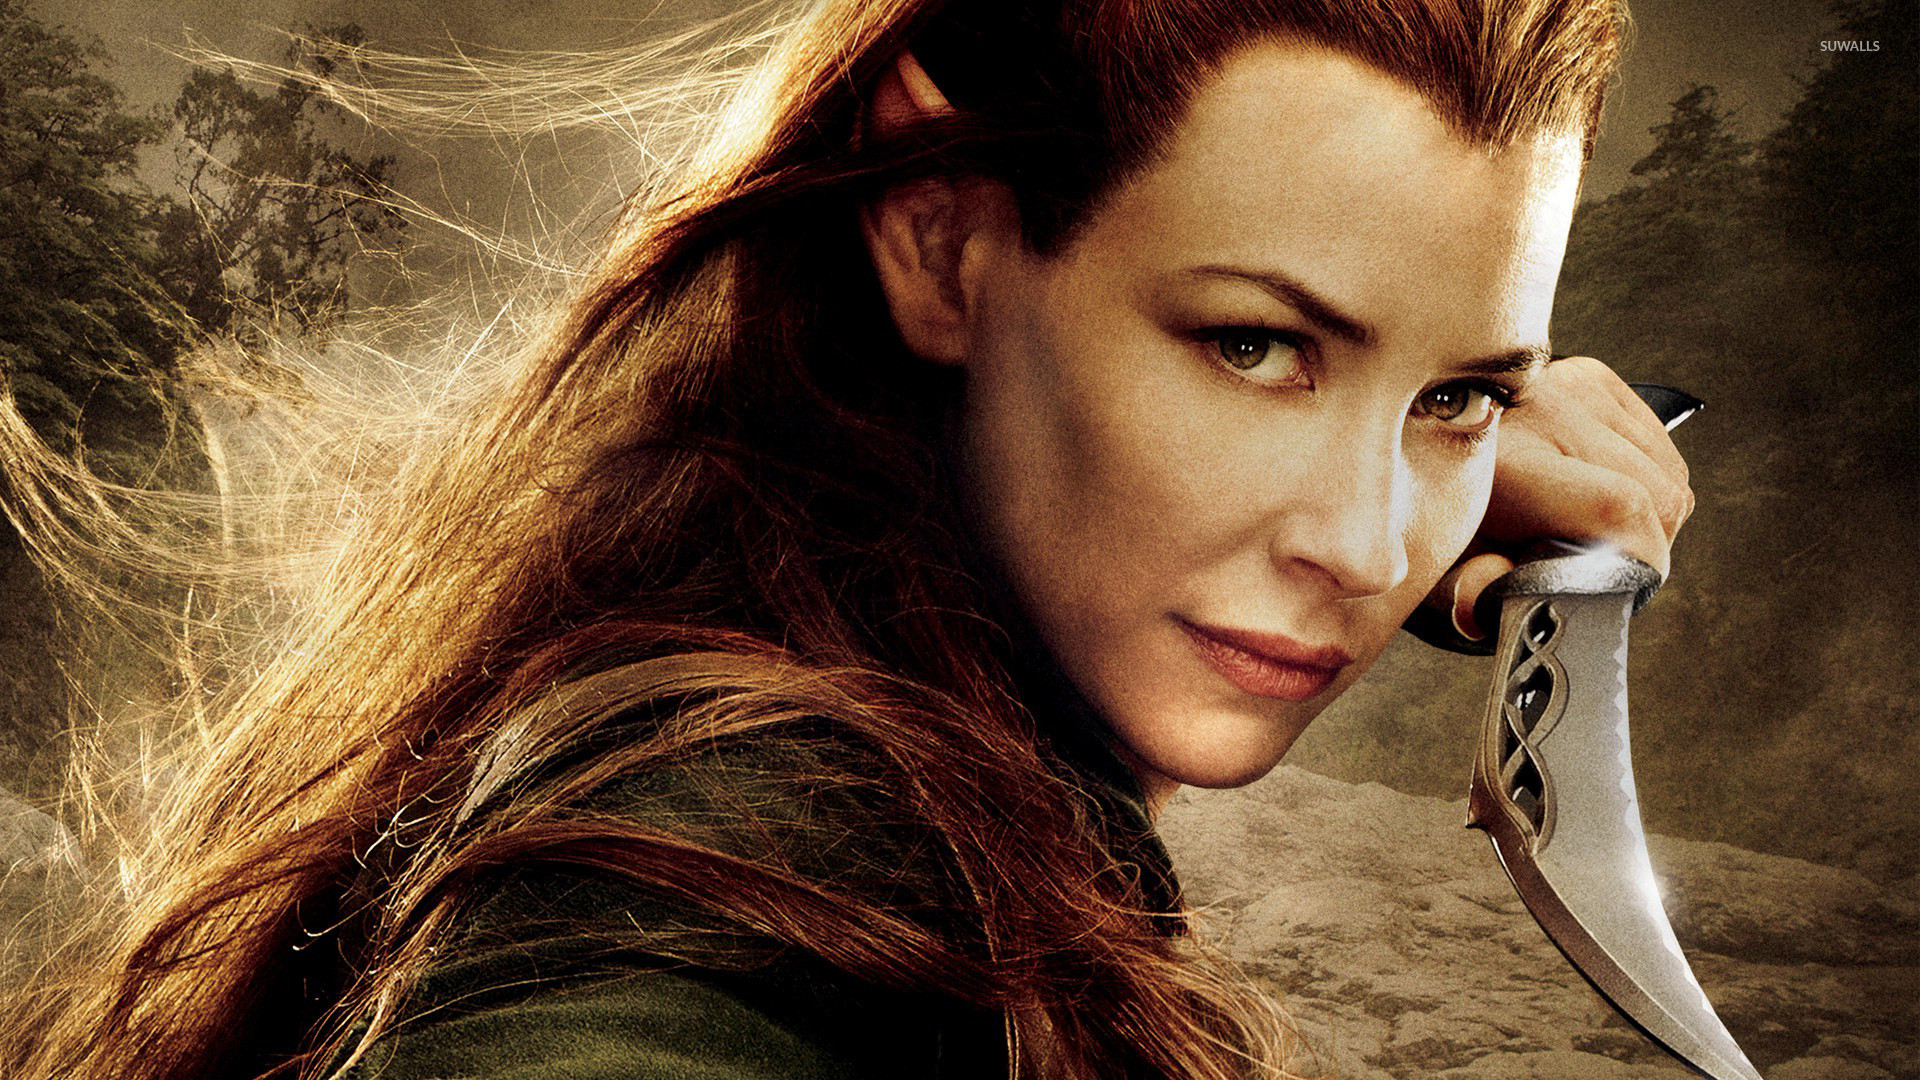 Tauriel – The Hobbit: The Desolation of Smaug wallpaper jpg